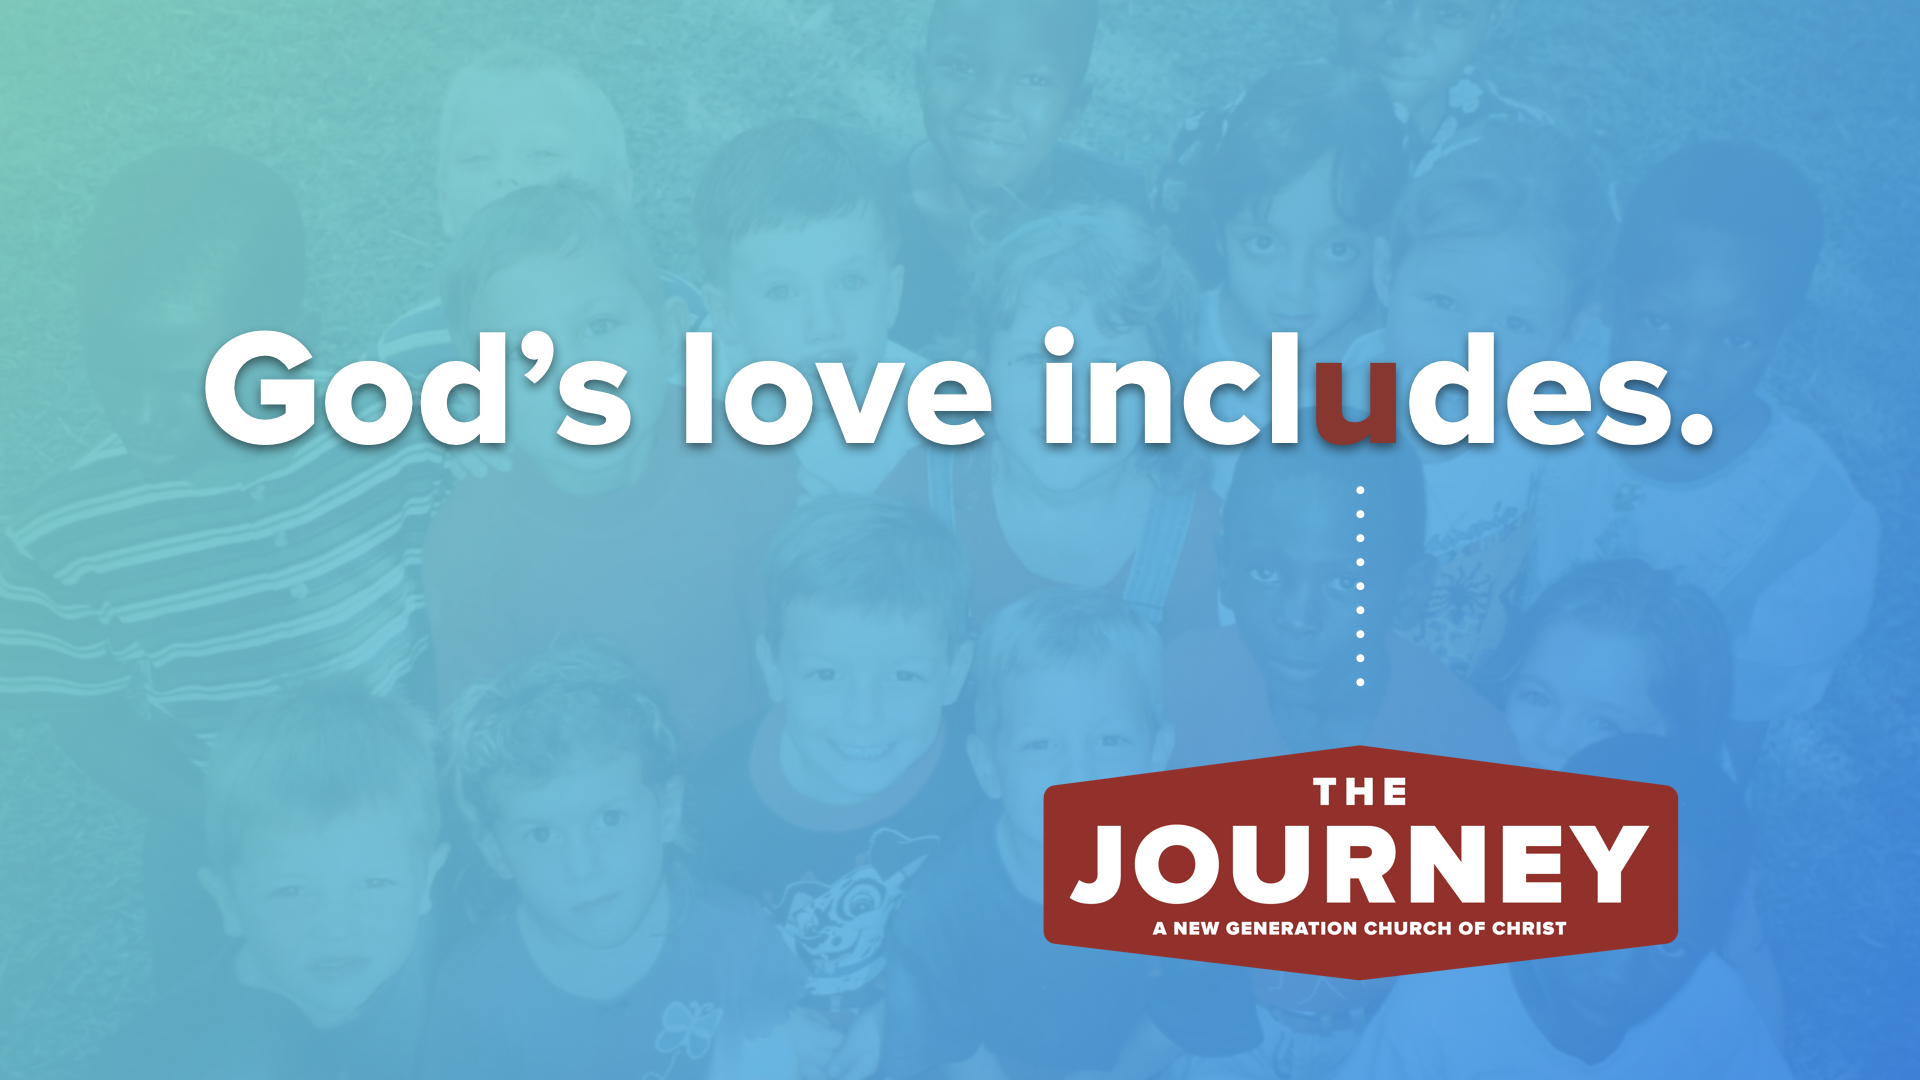 God's love includes. The Journey: A New Generation Church of Christ